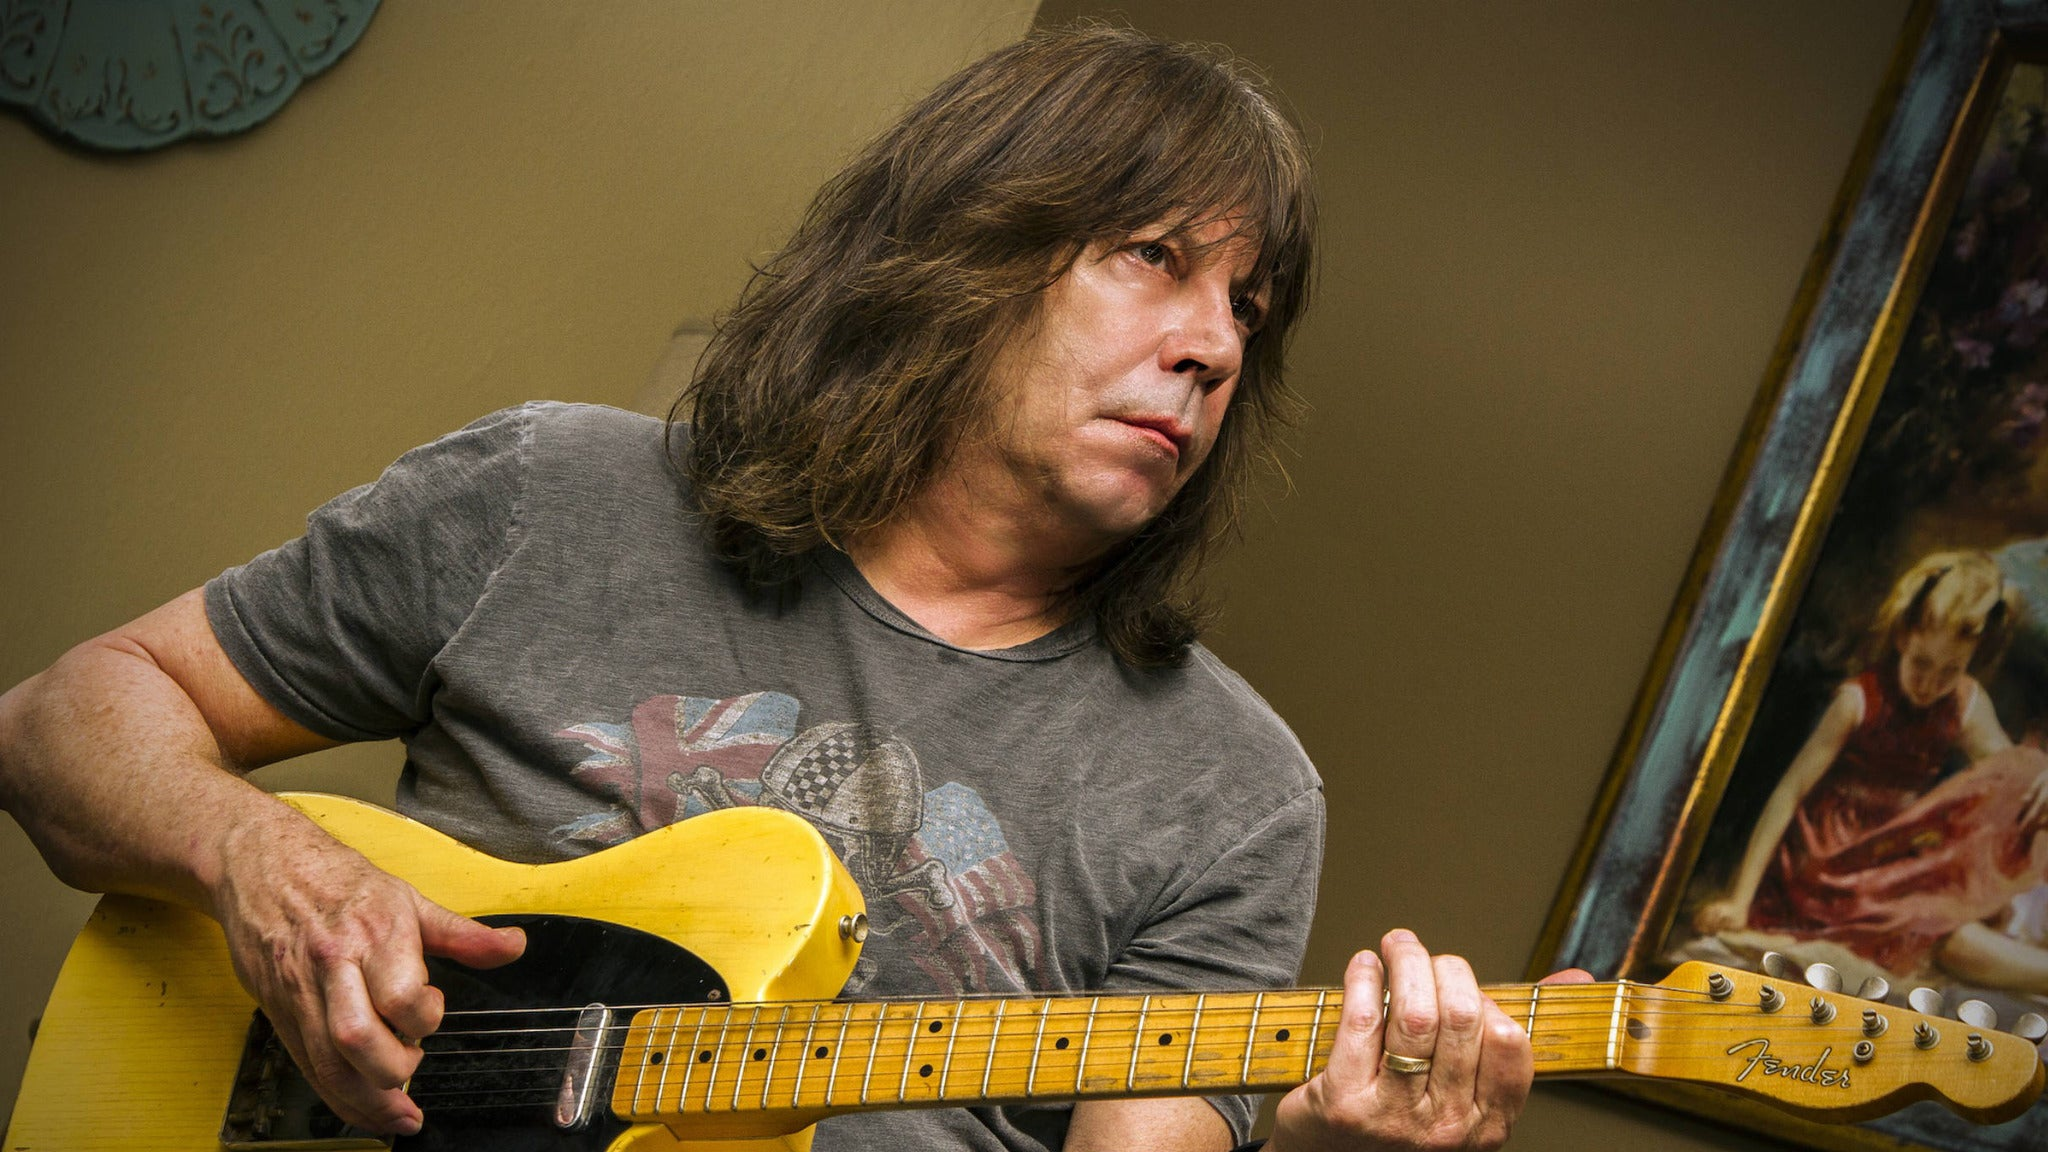 Pat Travers Kashmir Led Zeppelin Tribute Saloon Studios Live July 27th